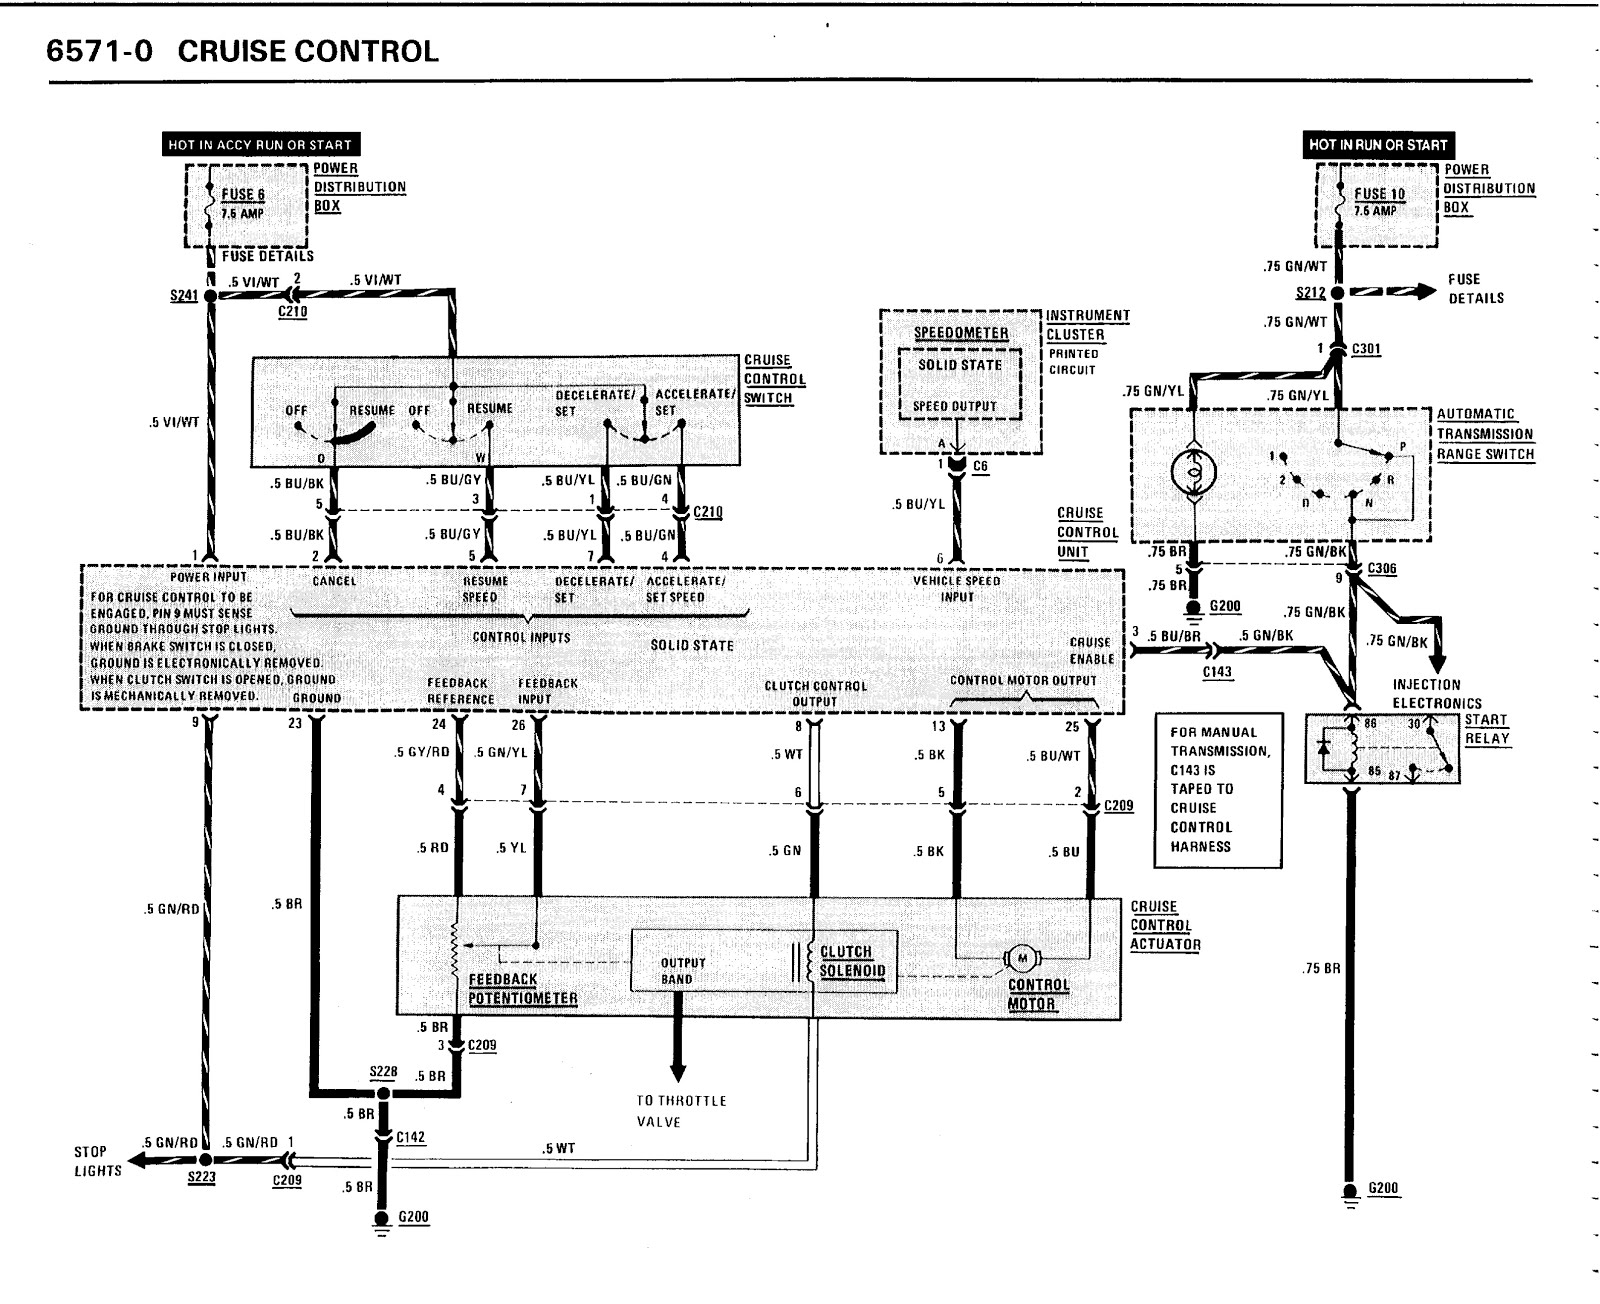 medium resolution of bmw cruise control diagram diagram data schema exp bmw e30 cruise control wiring diagram bmw cruise control diagram